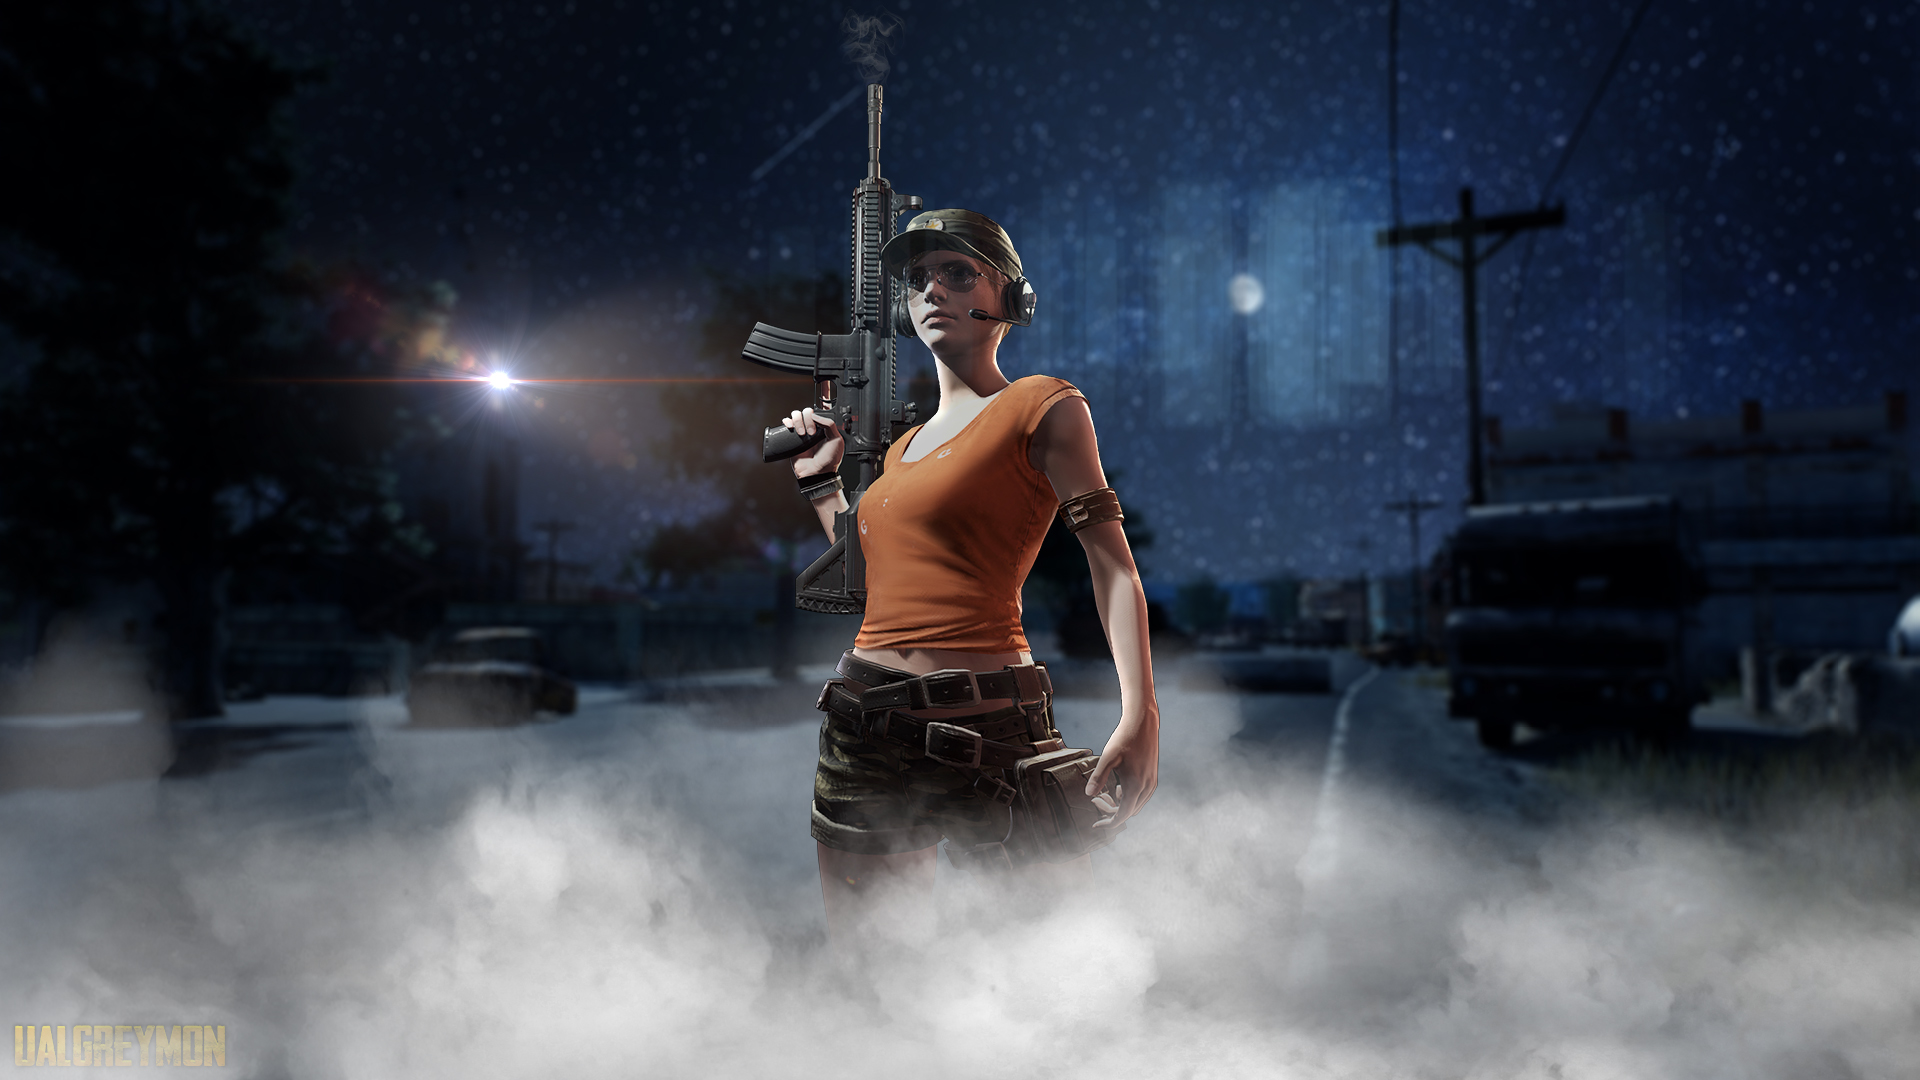 Pubg Wallpapers Hd 1080p: Pubg Night, HD Games, 4k Wallpapers, Images, Backgrounds